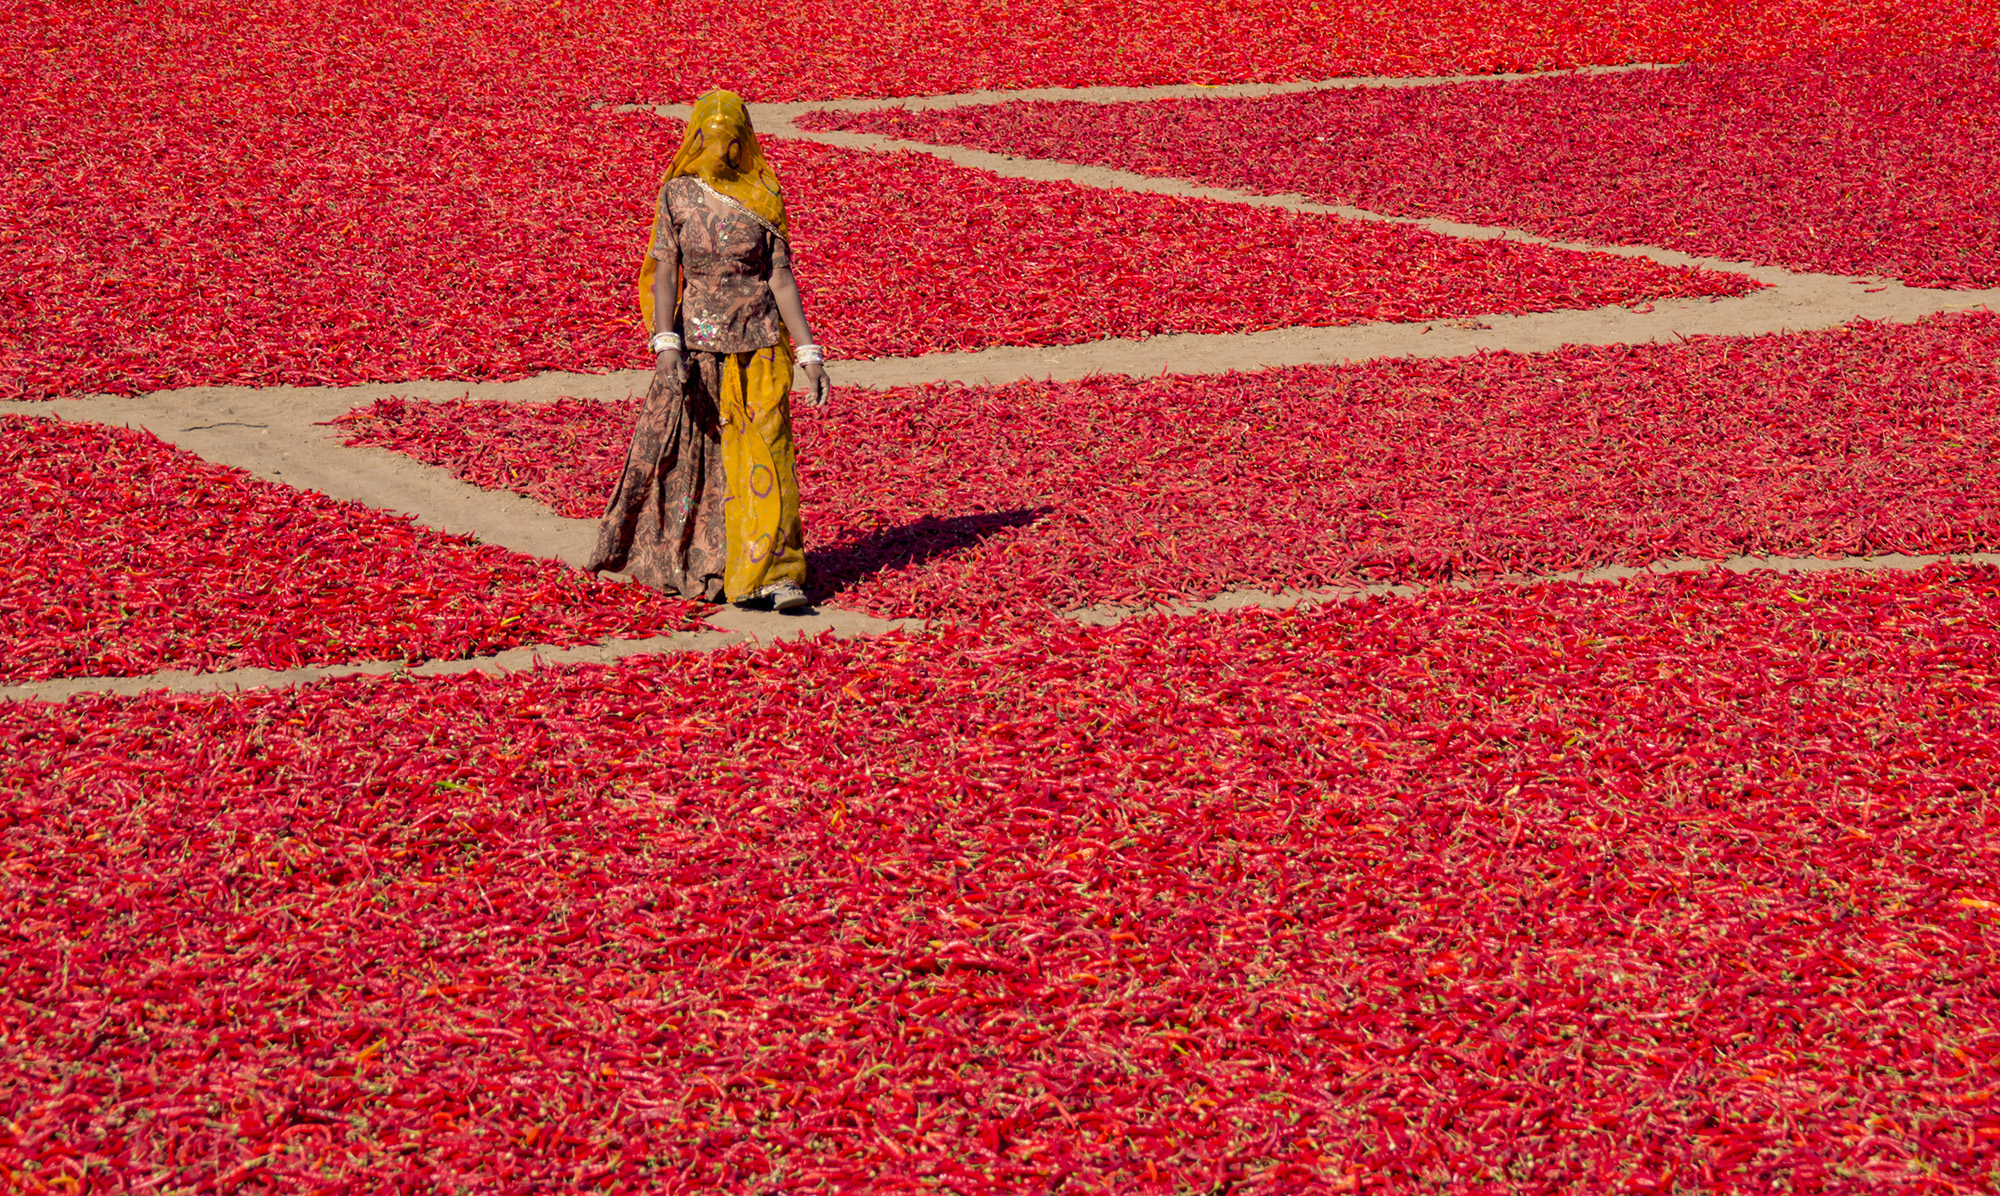 Shot this during the  winters. This lady farmer were crossing the lanes of drying chilies